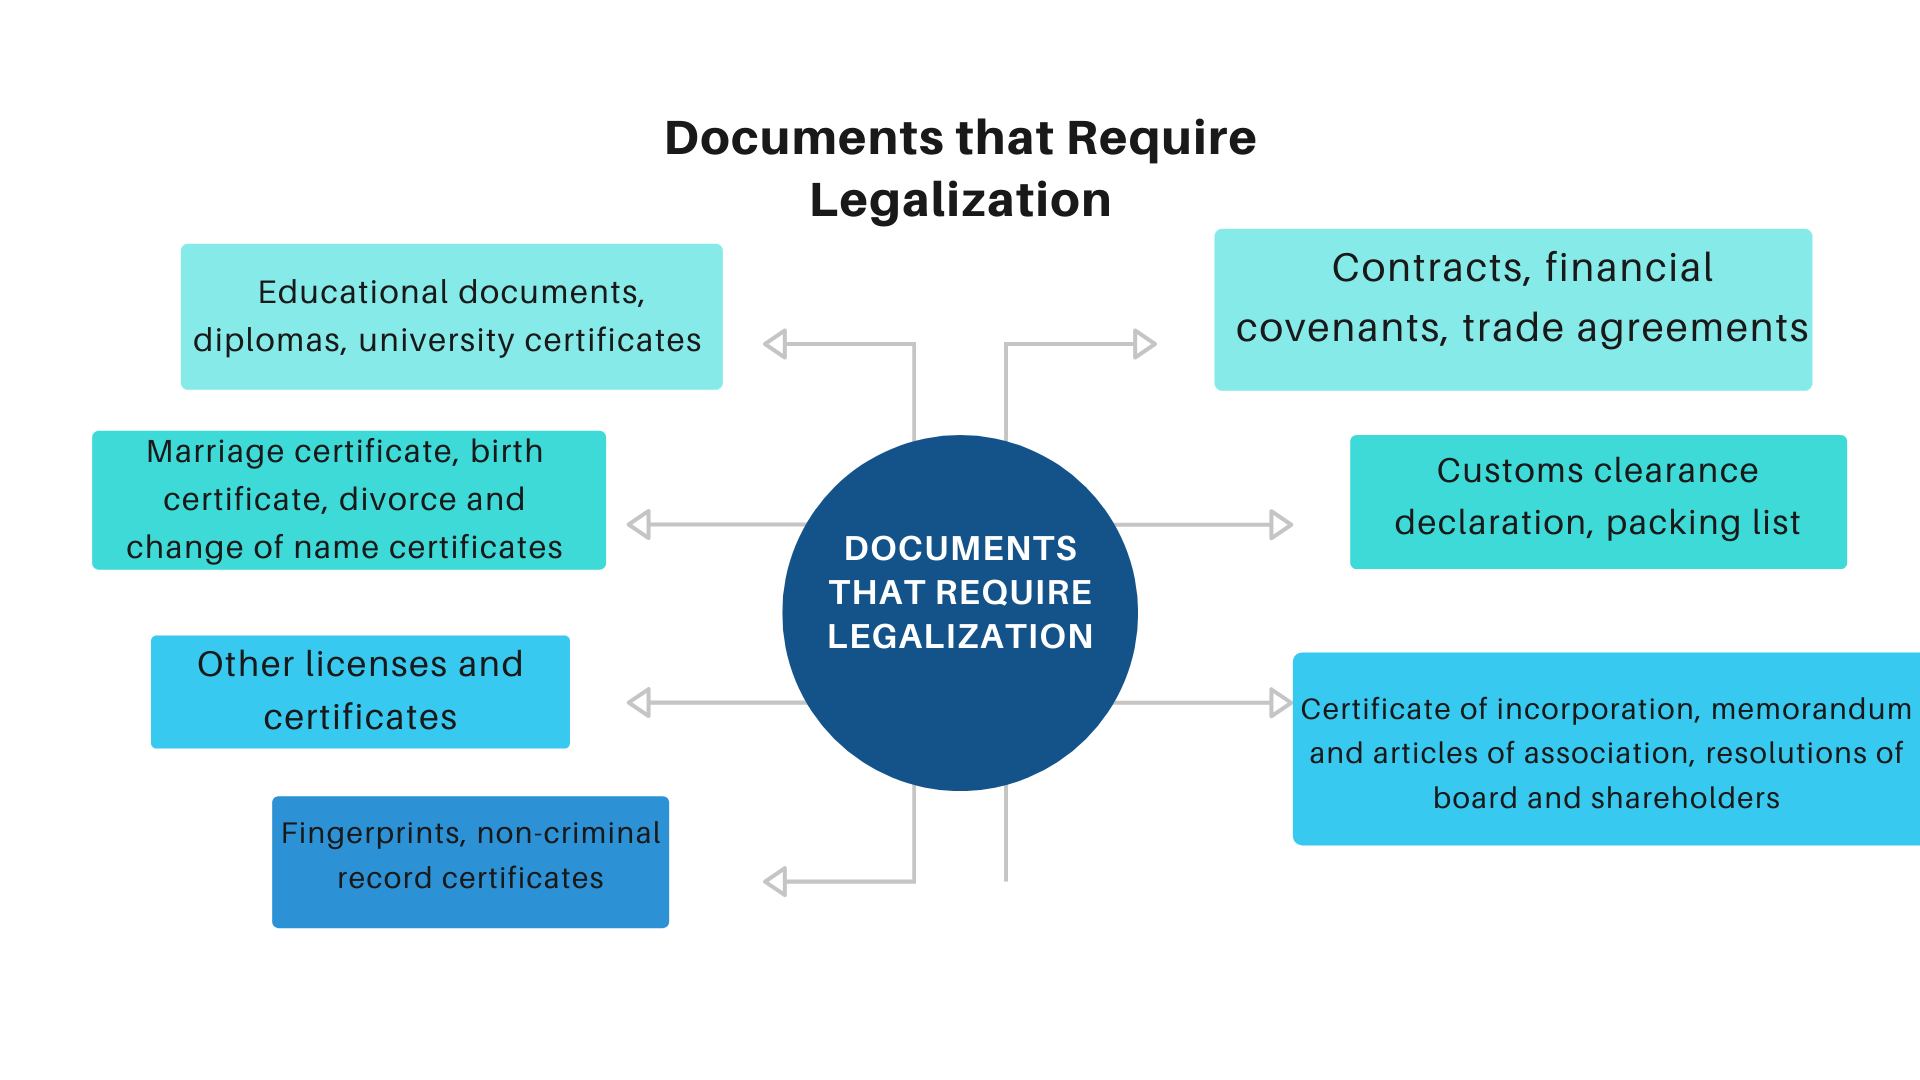 Documents that Require Legalisation